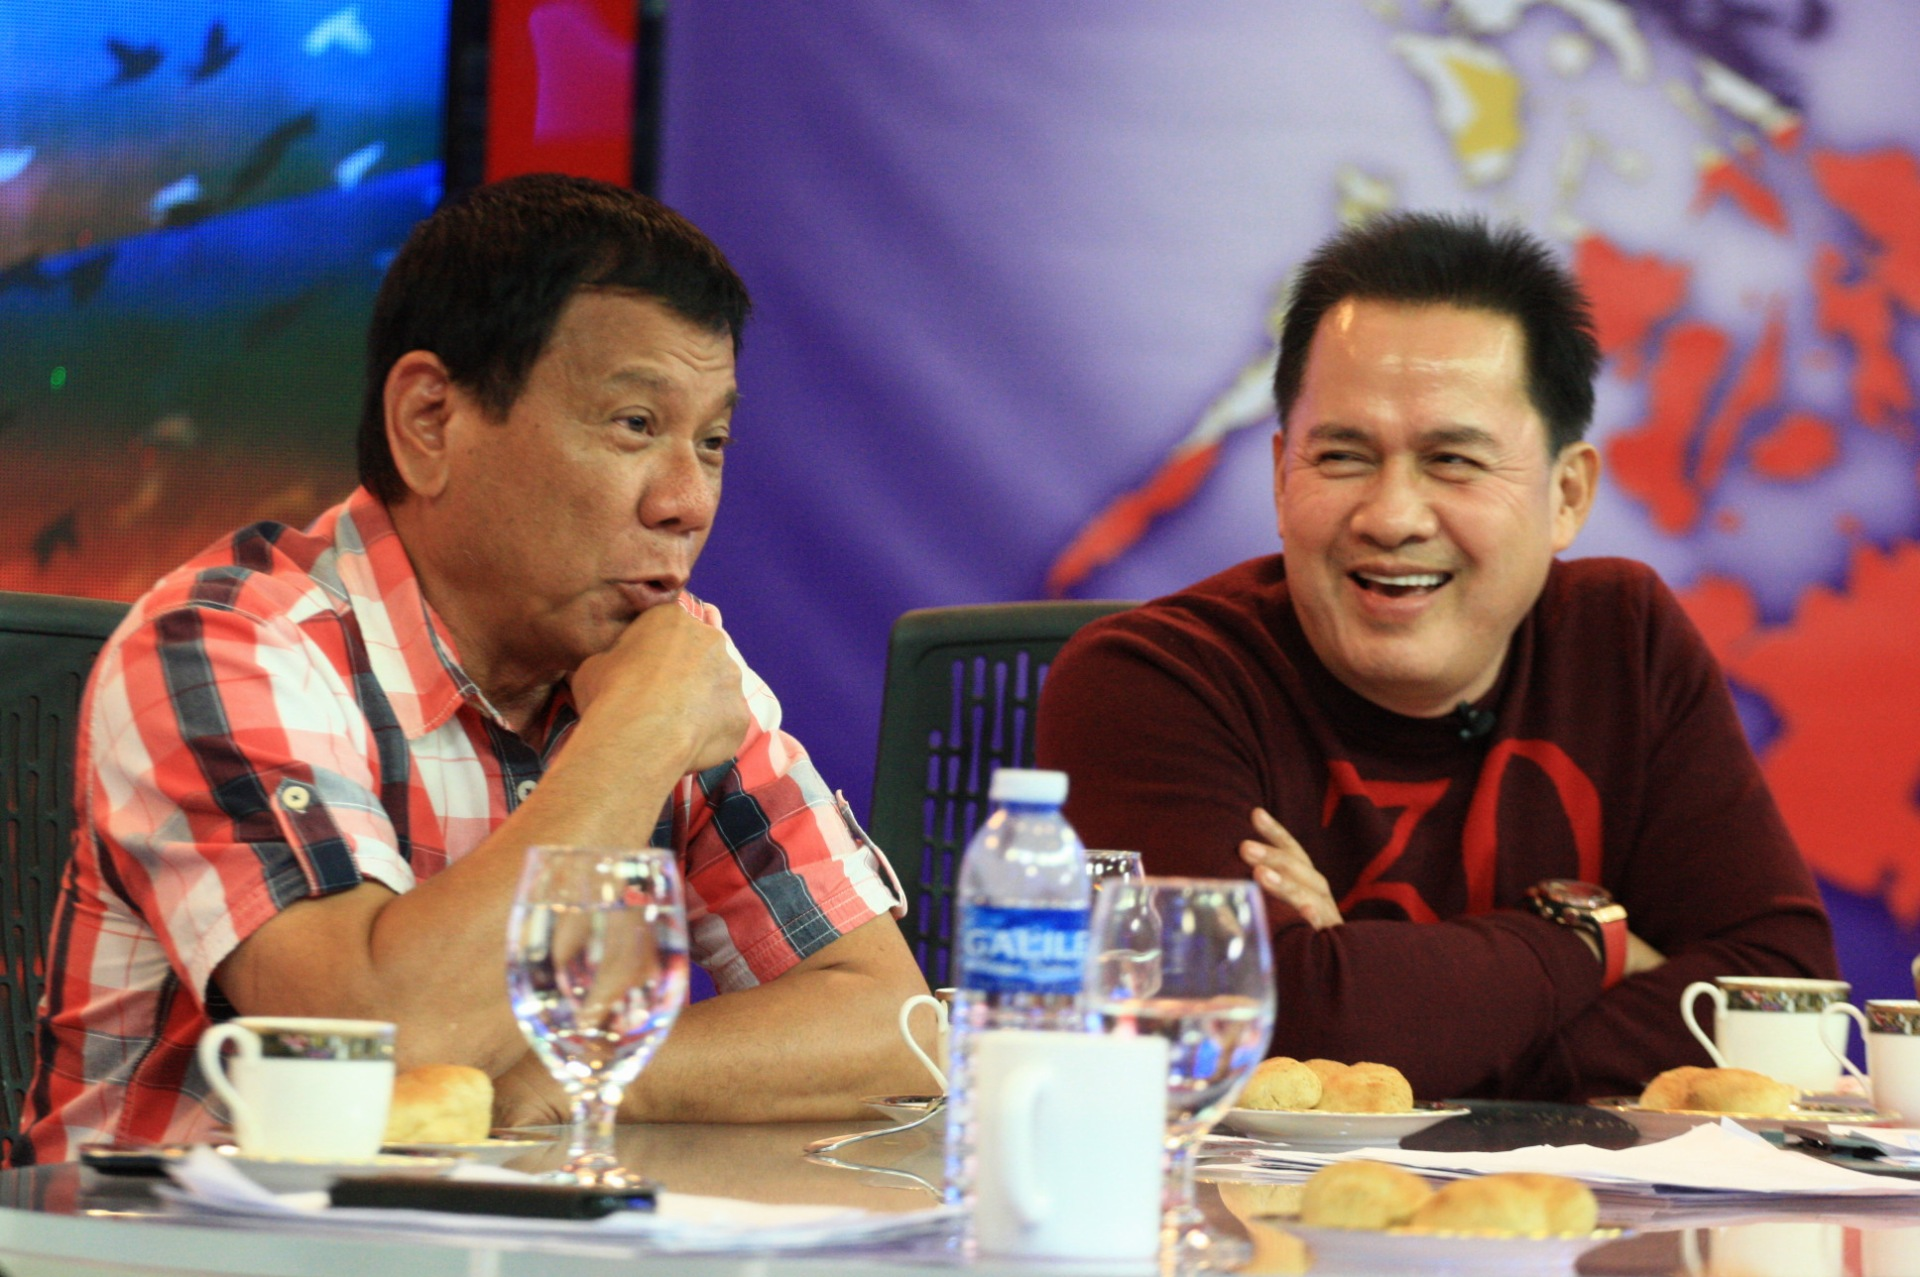 GOOD FRIENDS. Rody Duterte and Pastor Apollo Quiboloy catch up at the end of Election Day in Davao City. Photo by Manman Dejeto/Rappler